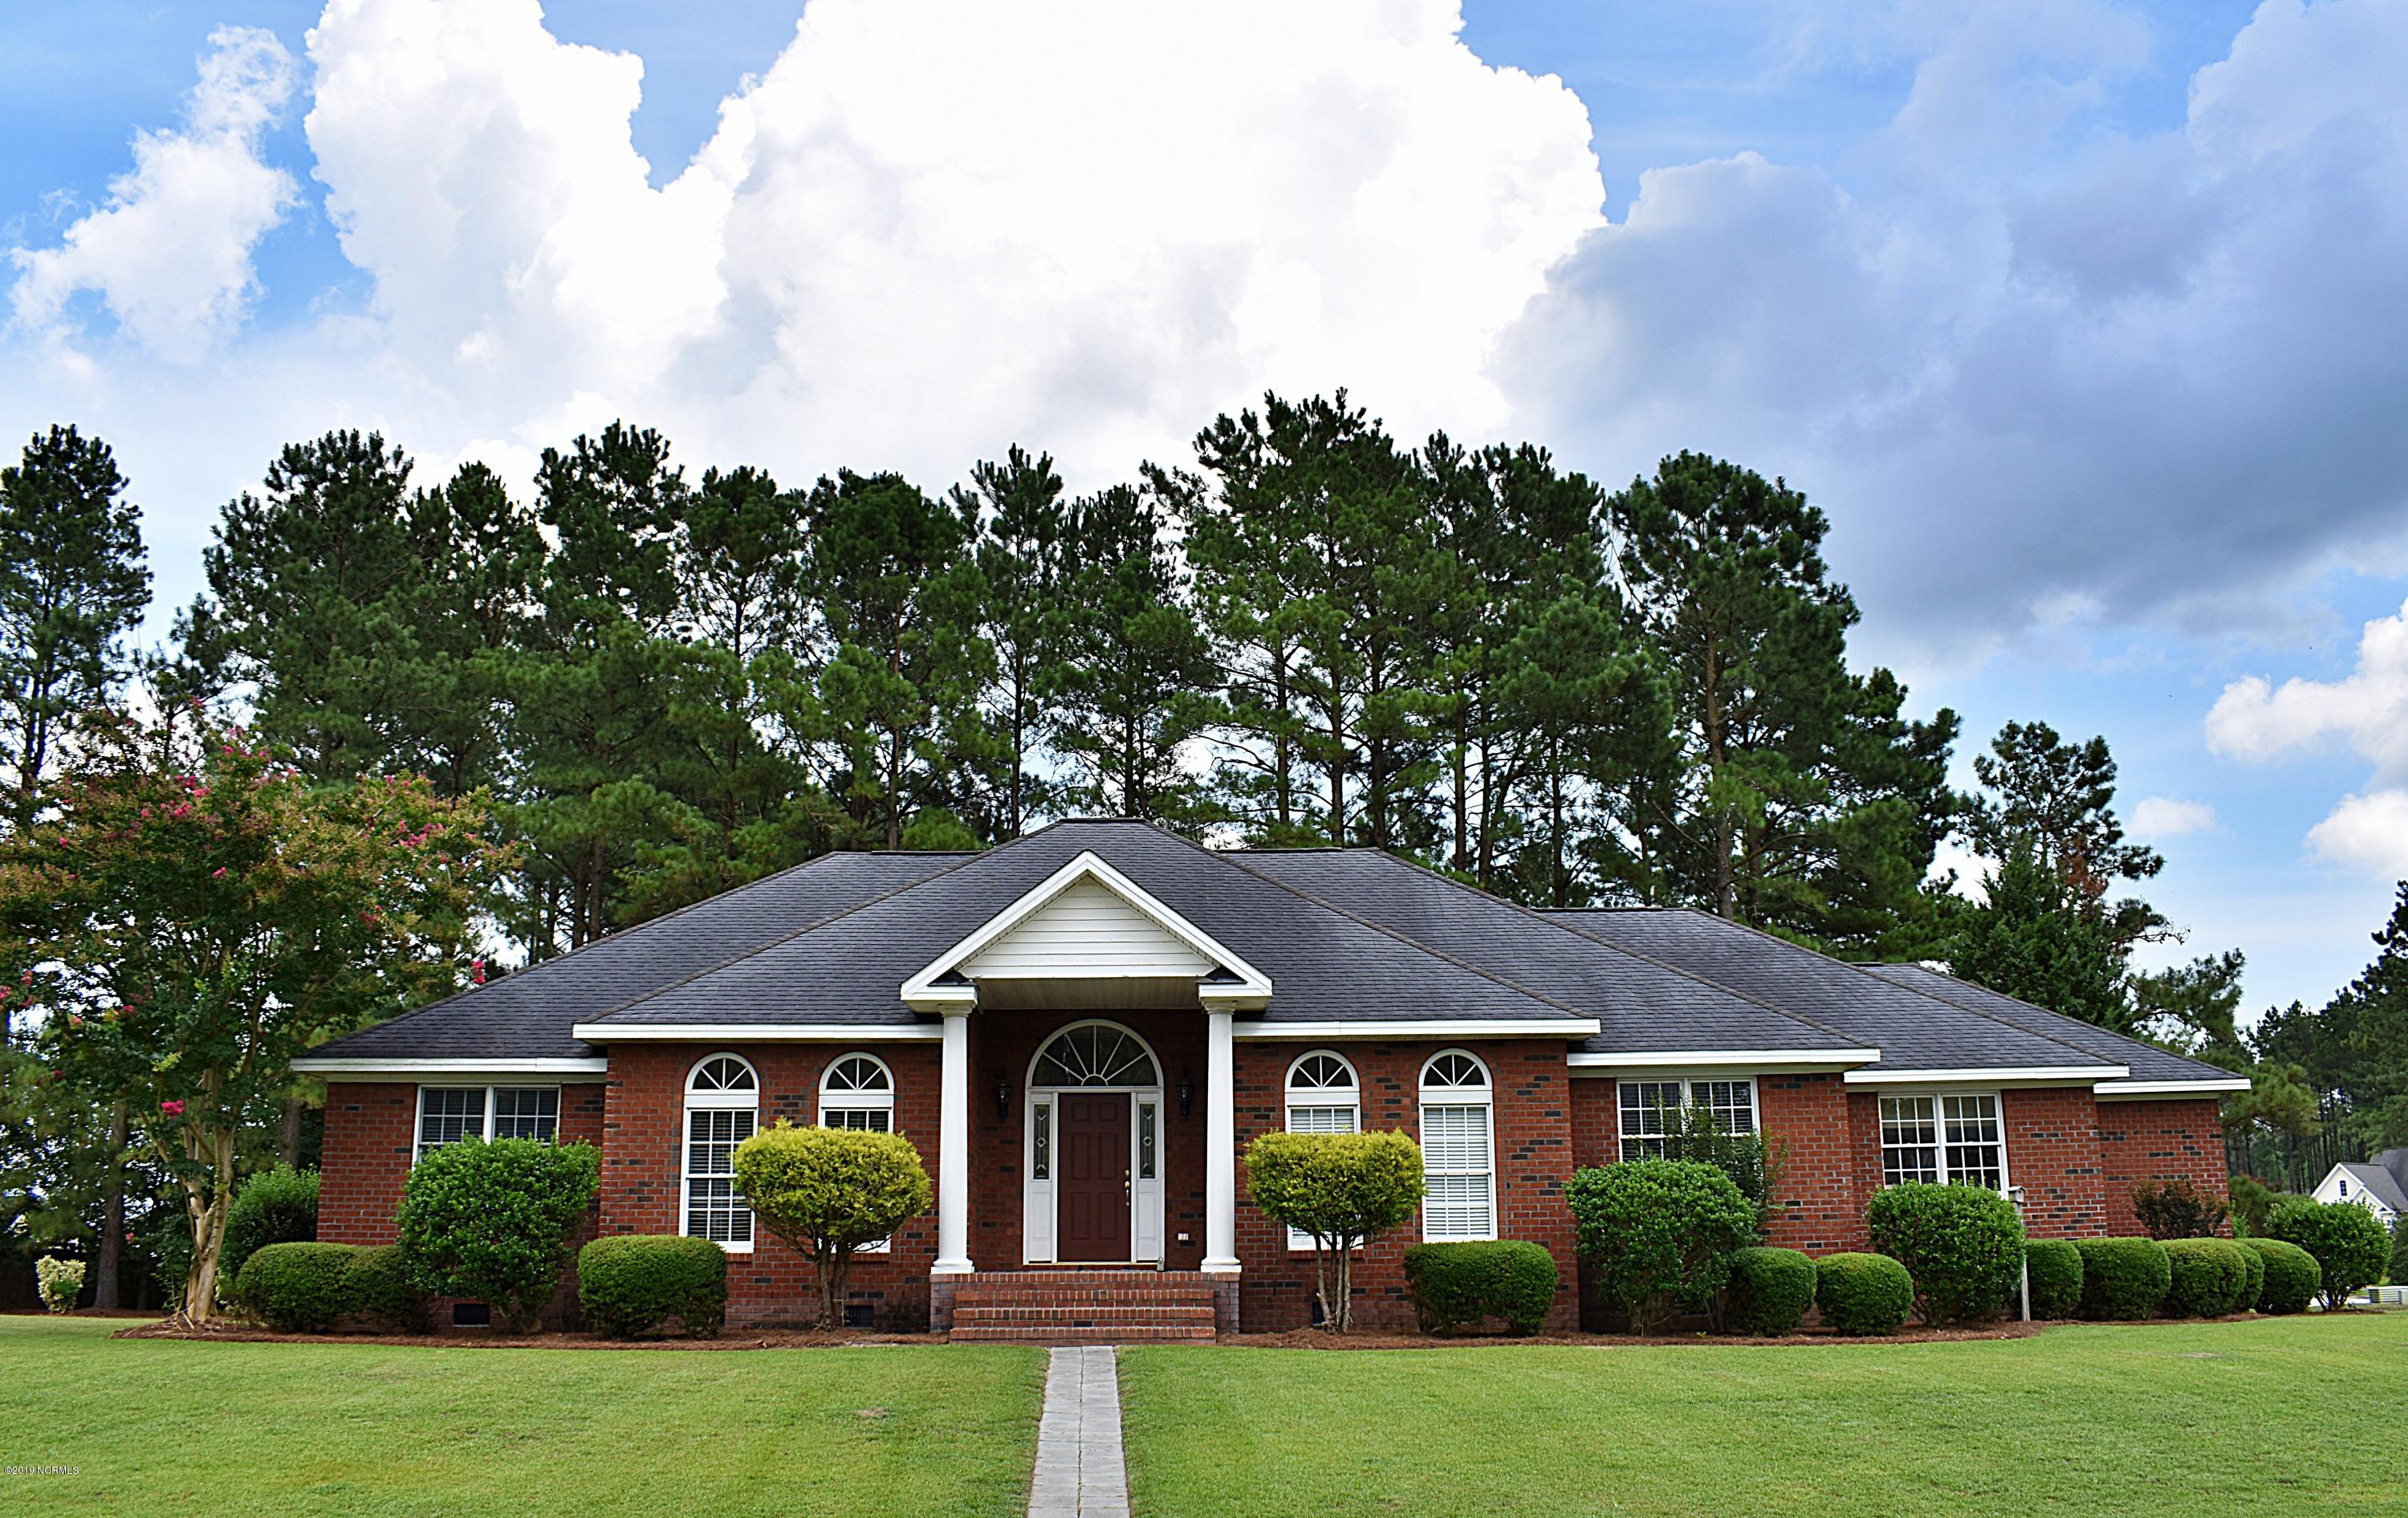 Property for sale at 101 Bargate Drive, New Bern,  North Carolina 28562